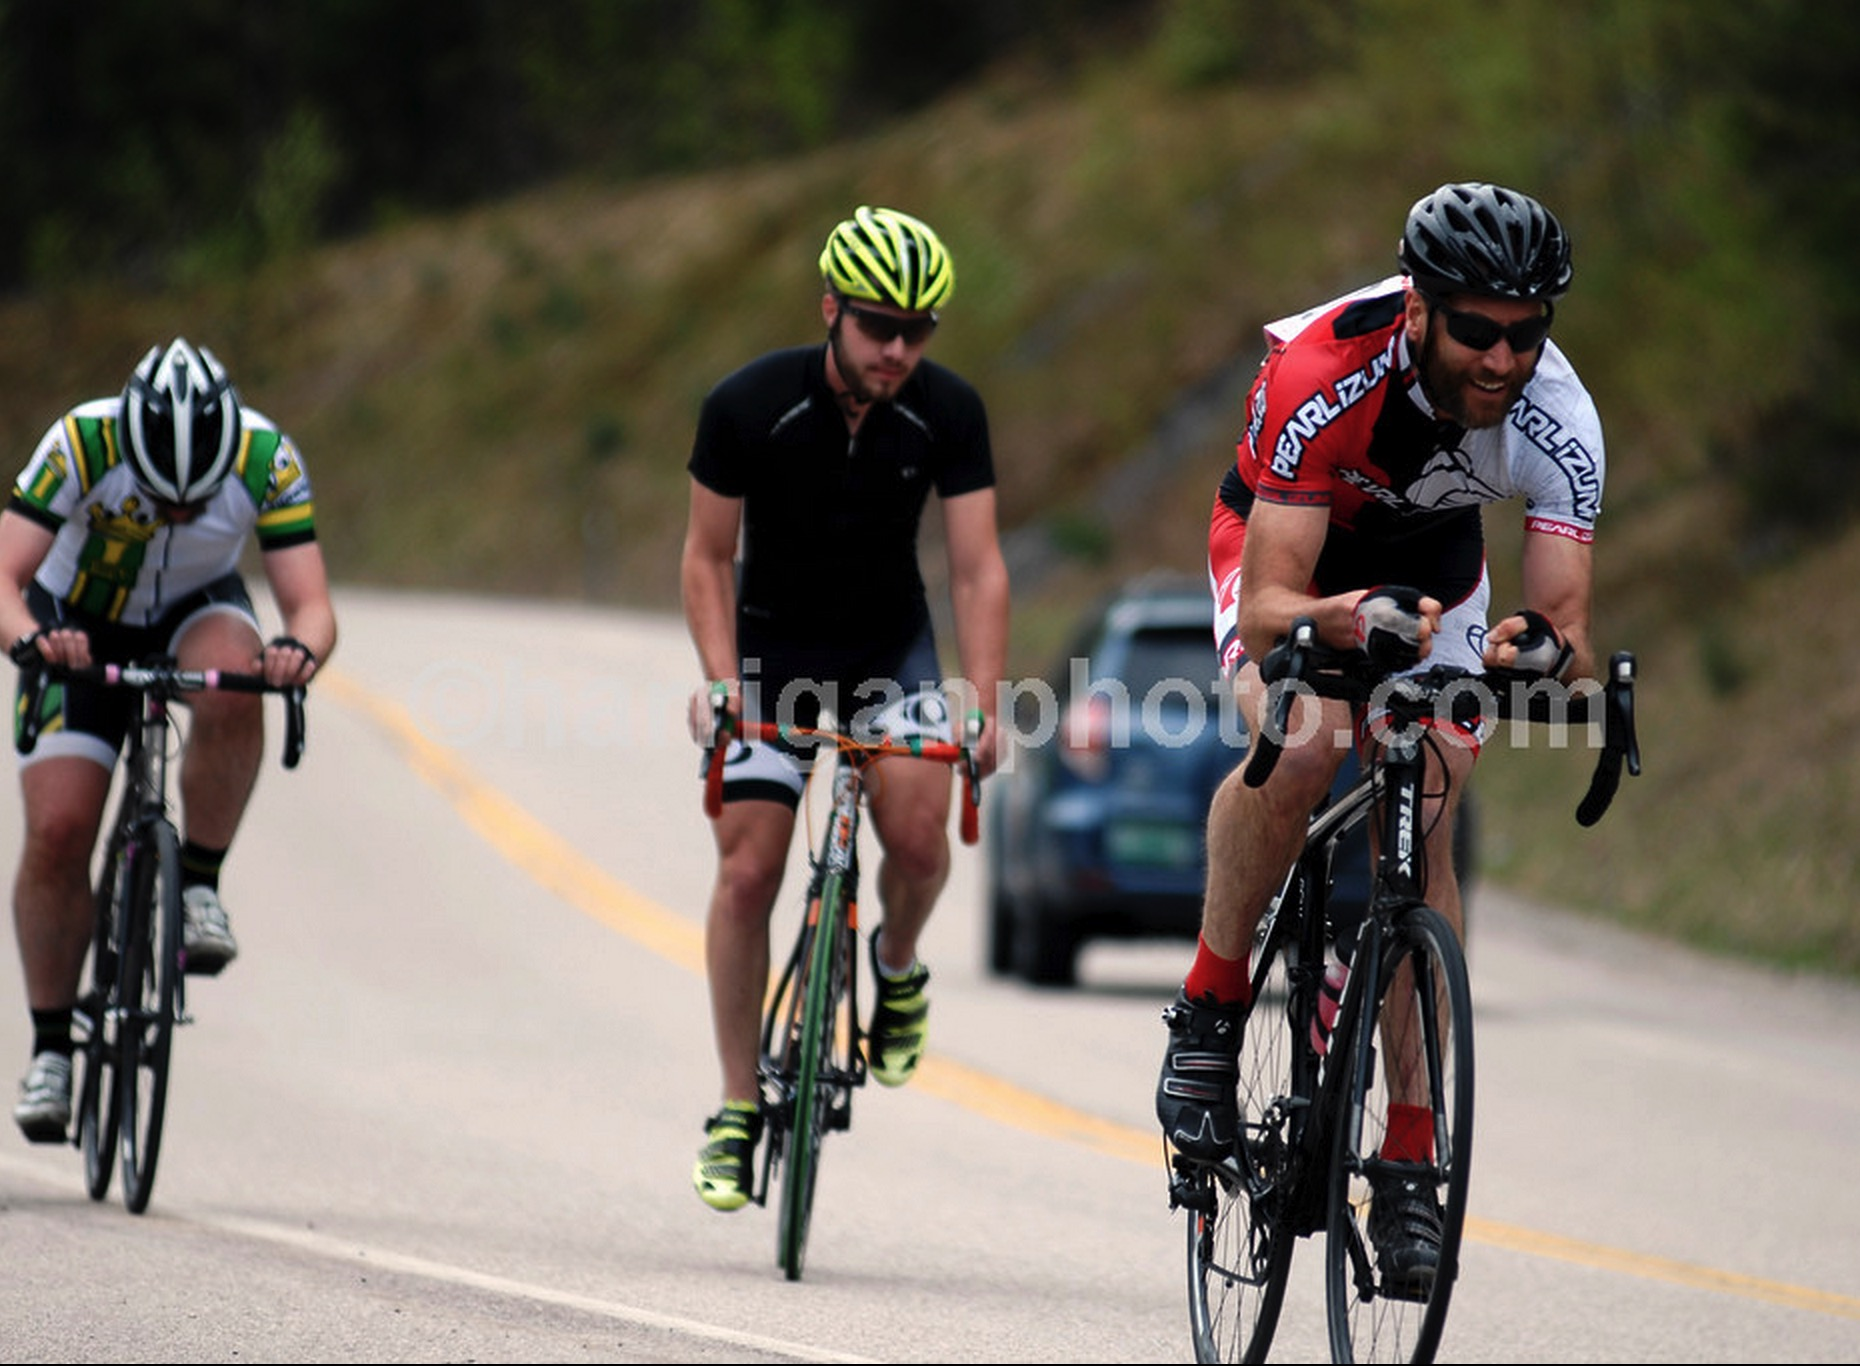 Battling a up the Kanc trying to shake fellow age groupers.